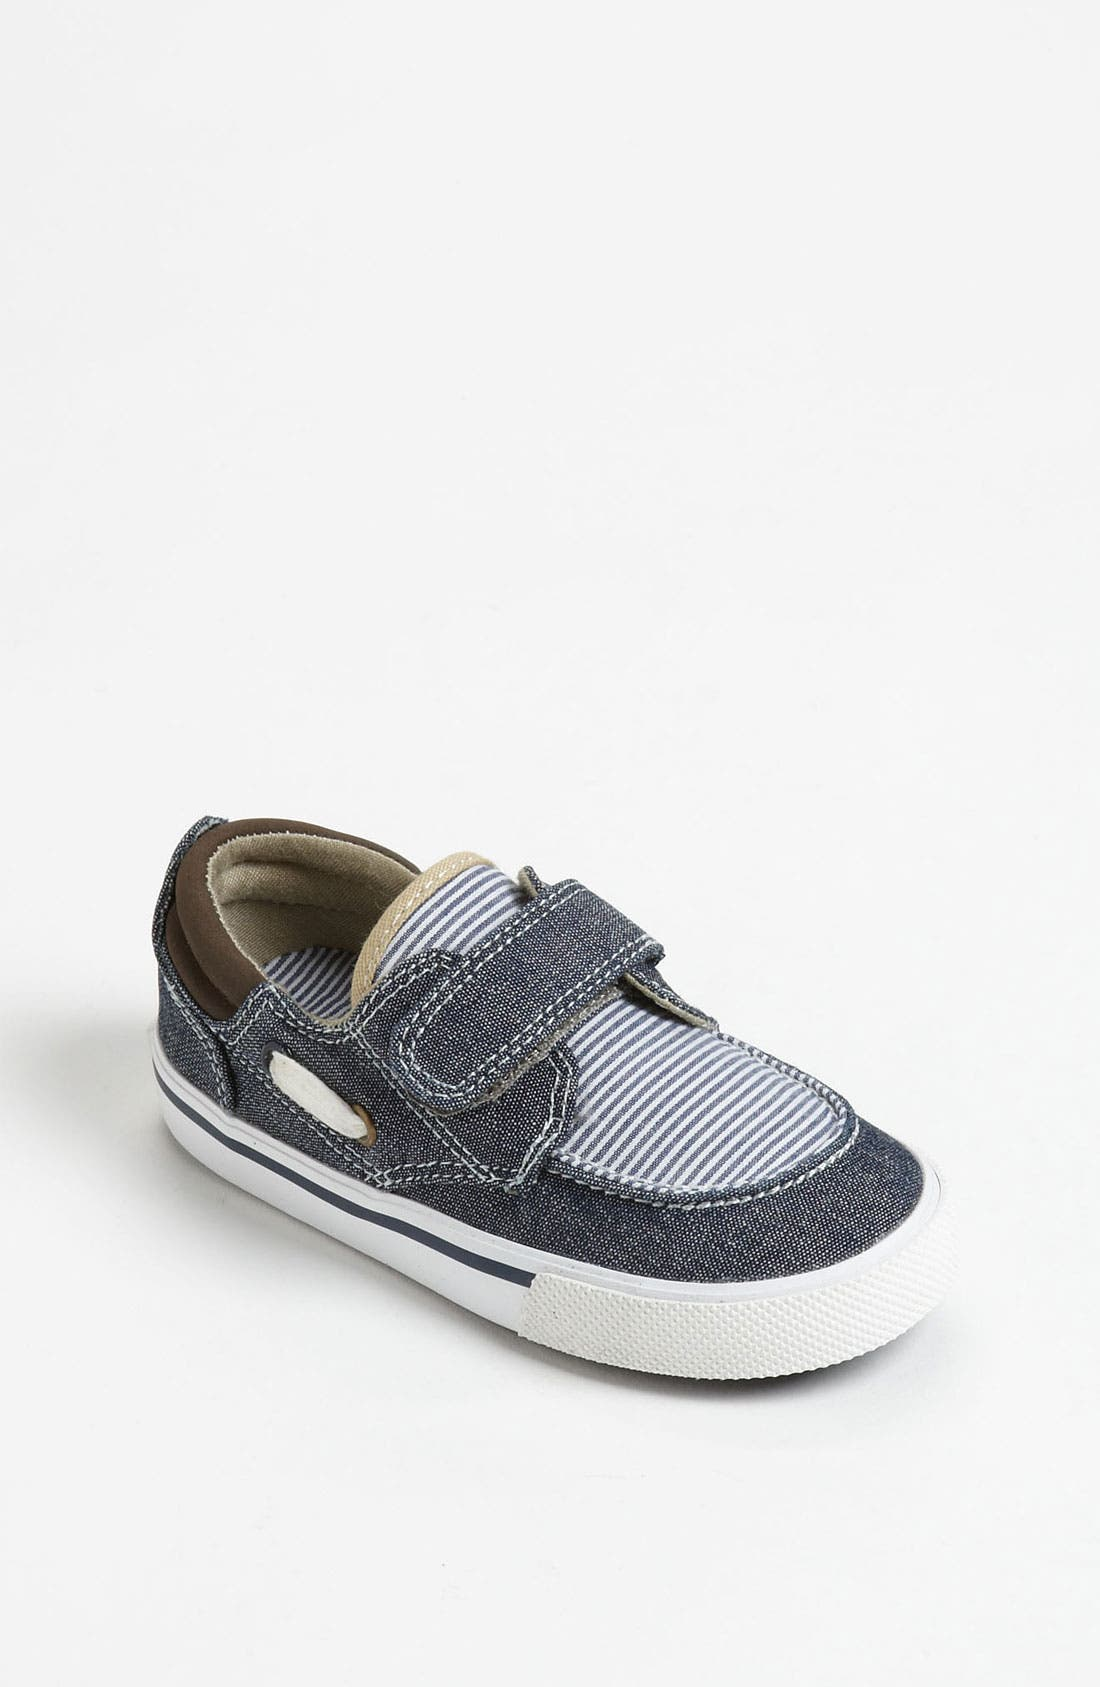 Alternate Image 1 Selected - Cole Haan 'Air Cory' Boat Shoe (Walker & Toddler)